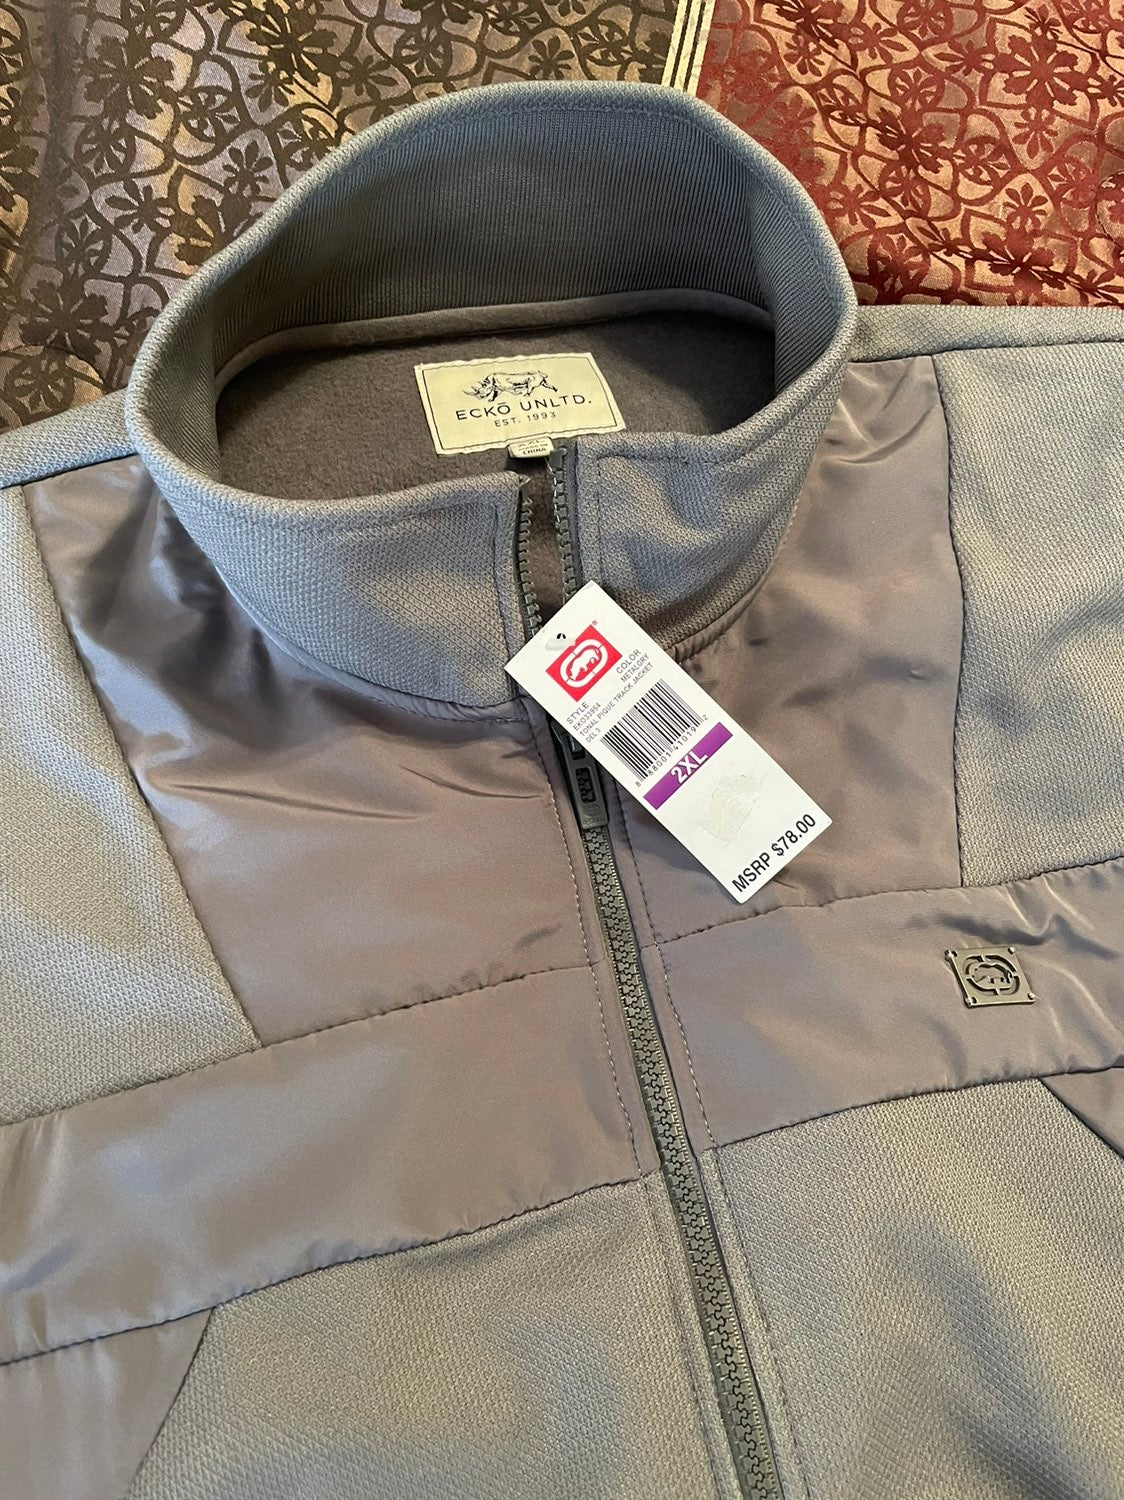 Nwt Ecko Unlimited Jacket XXL